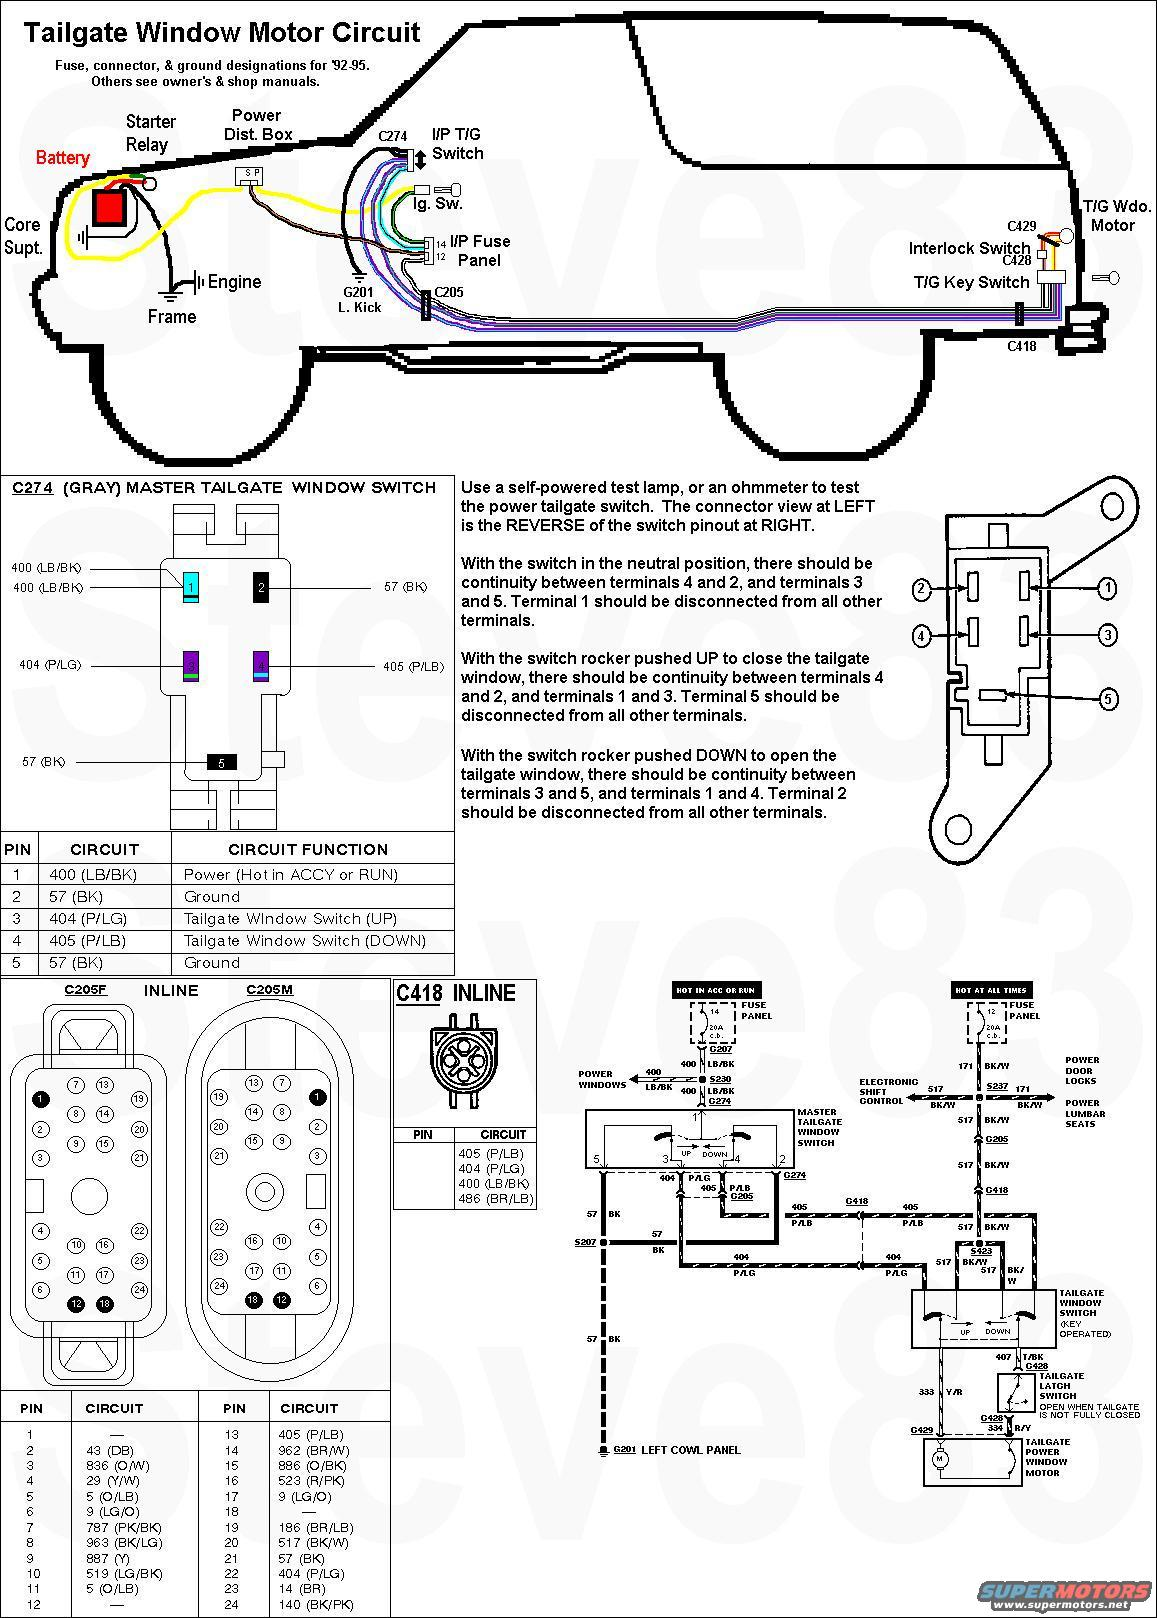 tgmotorwiring tailgate window lift key switch bypass? ford truck enthusiasts 1979 ford bronco wiring diagram at fashall.co